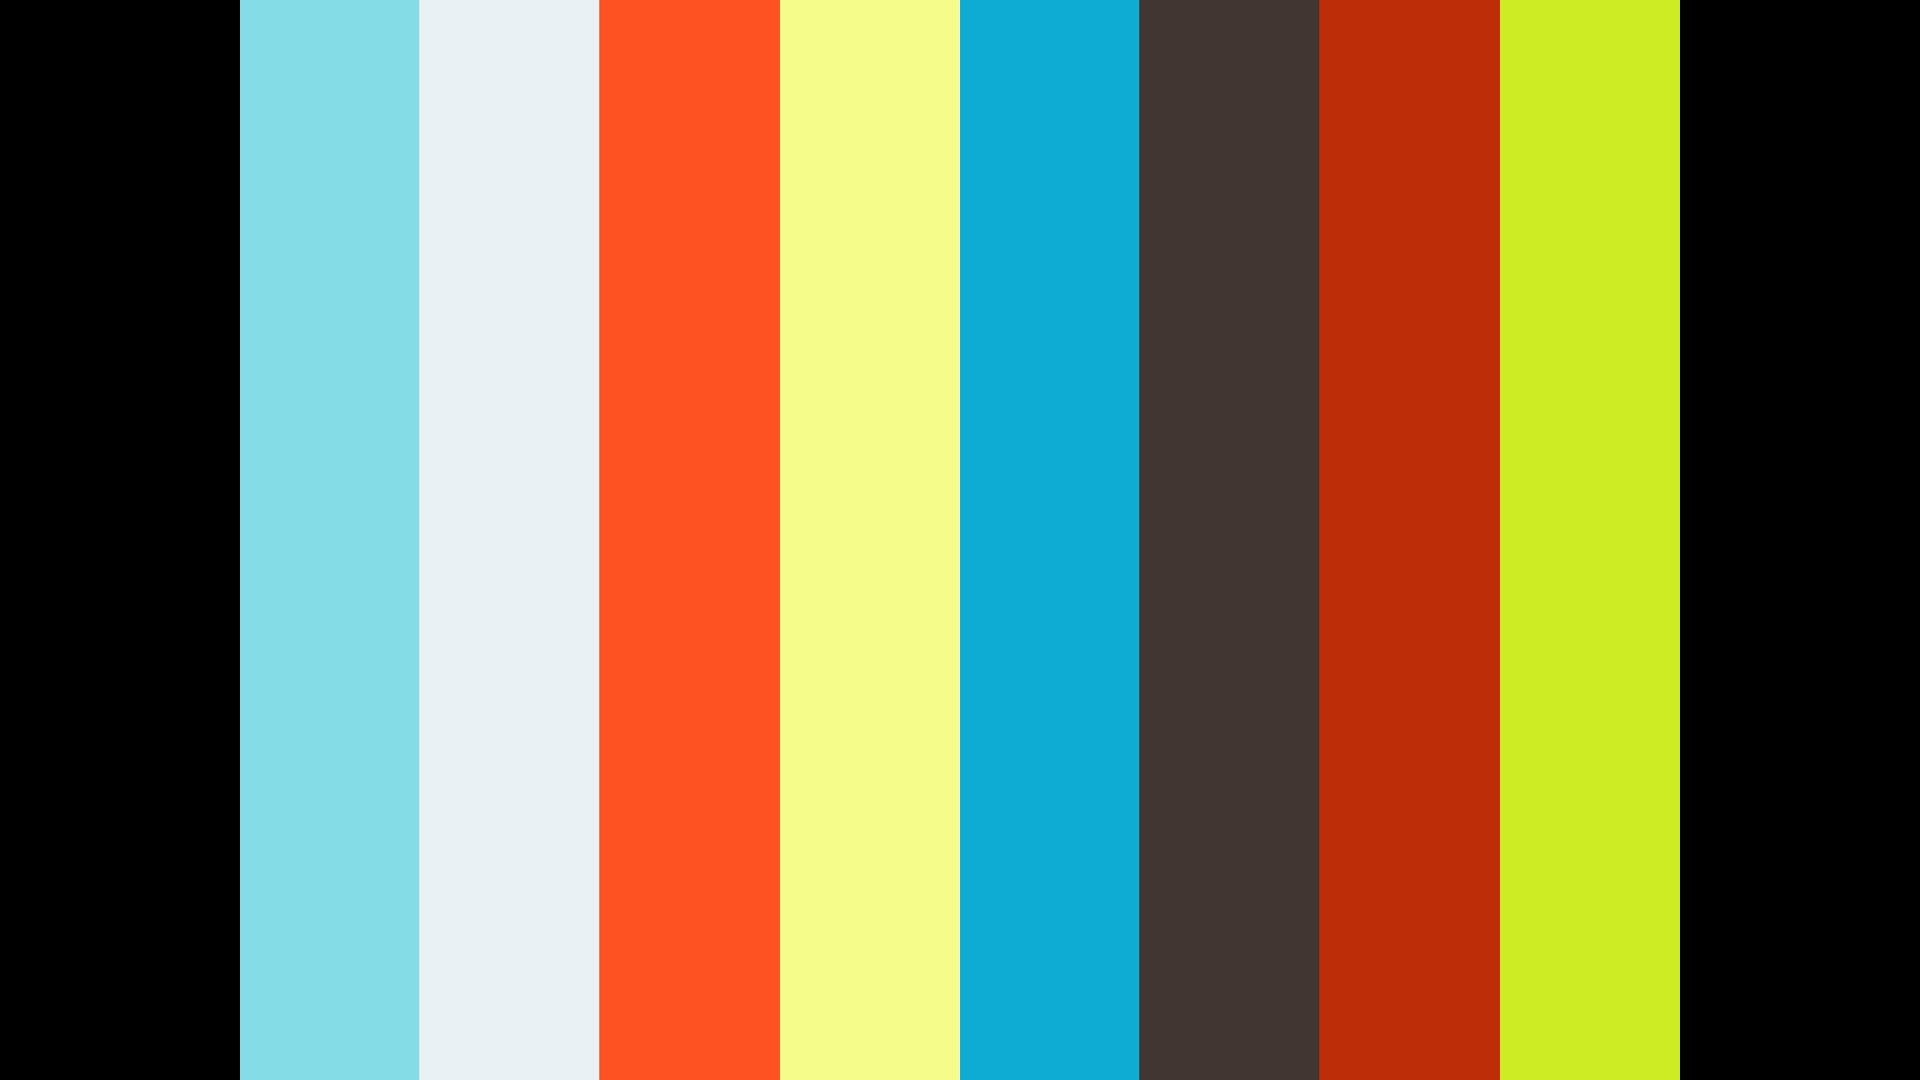 GoldMine PowerUp! webinar event sharing 12 email tips